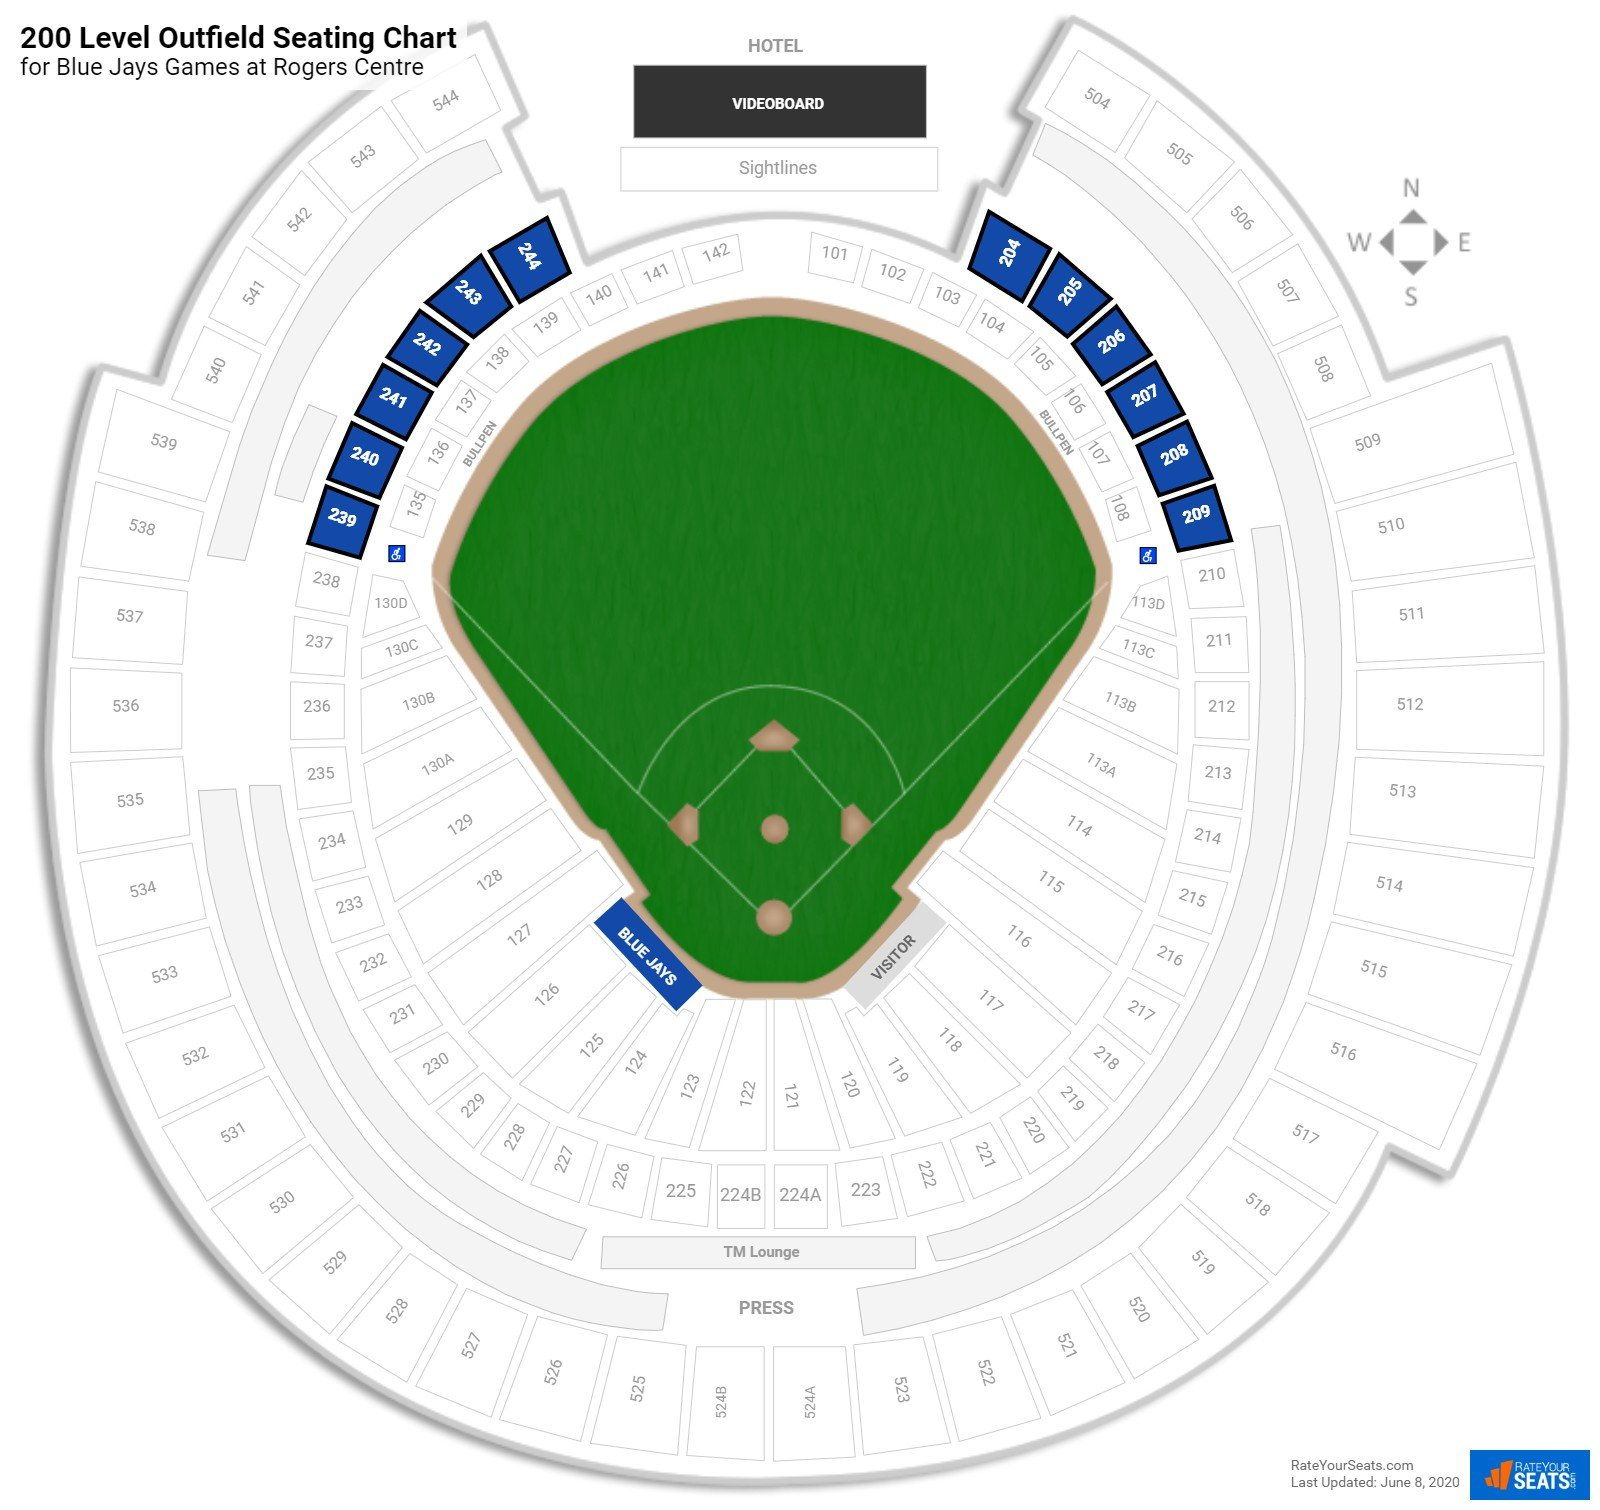 Rogers Centre 200 Level Outfield seating chart